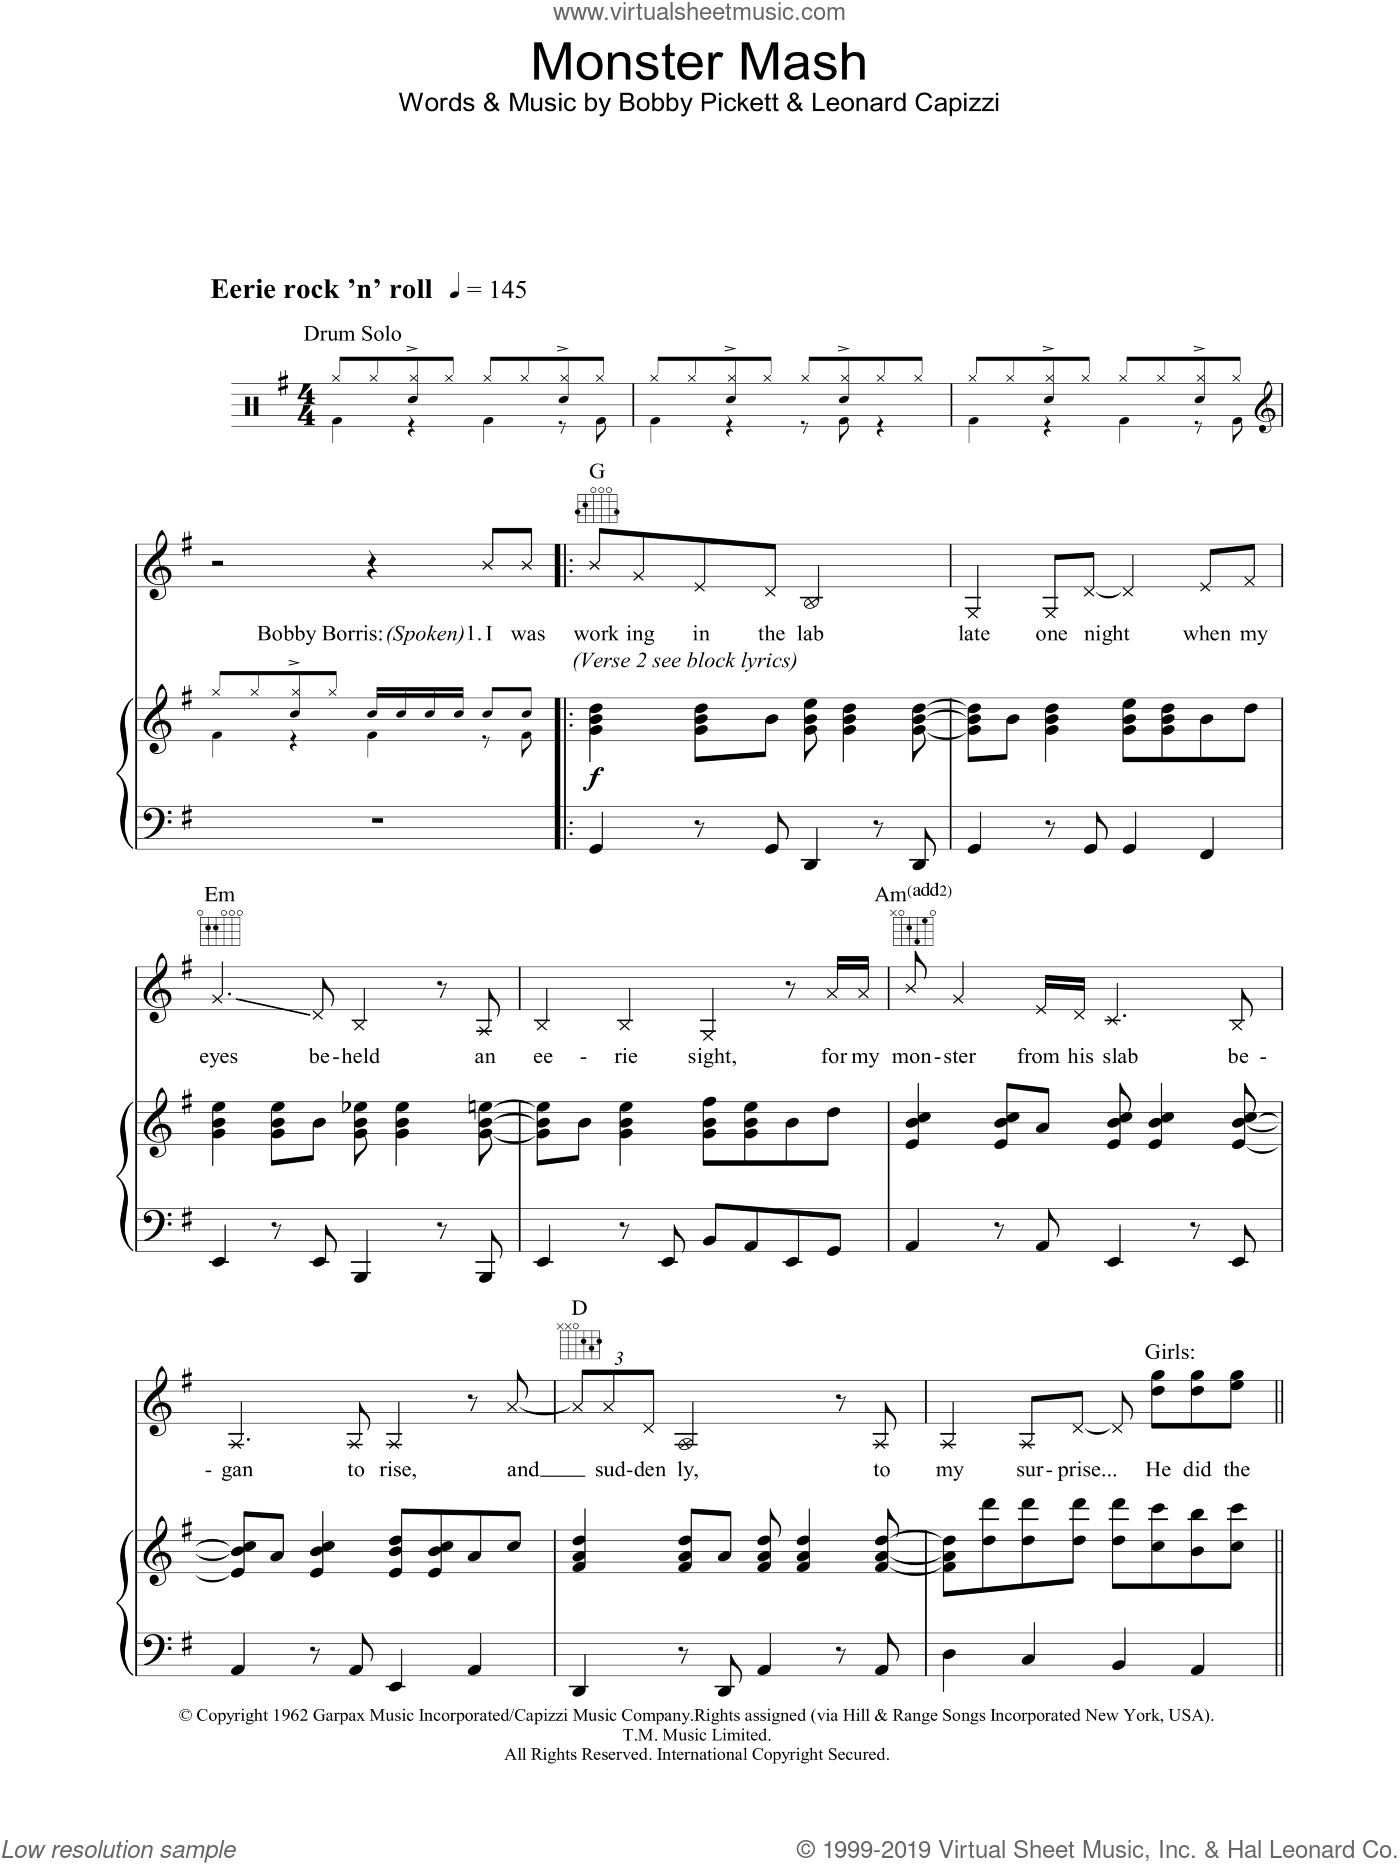 Monster Mash sheet music for voice, piano or guitar by Bobby Pickett and Leonard Capizzi, intermediate. Score Image Preview.